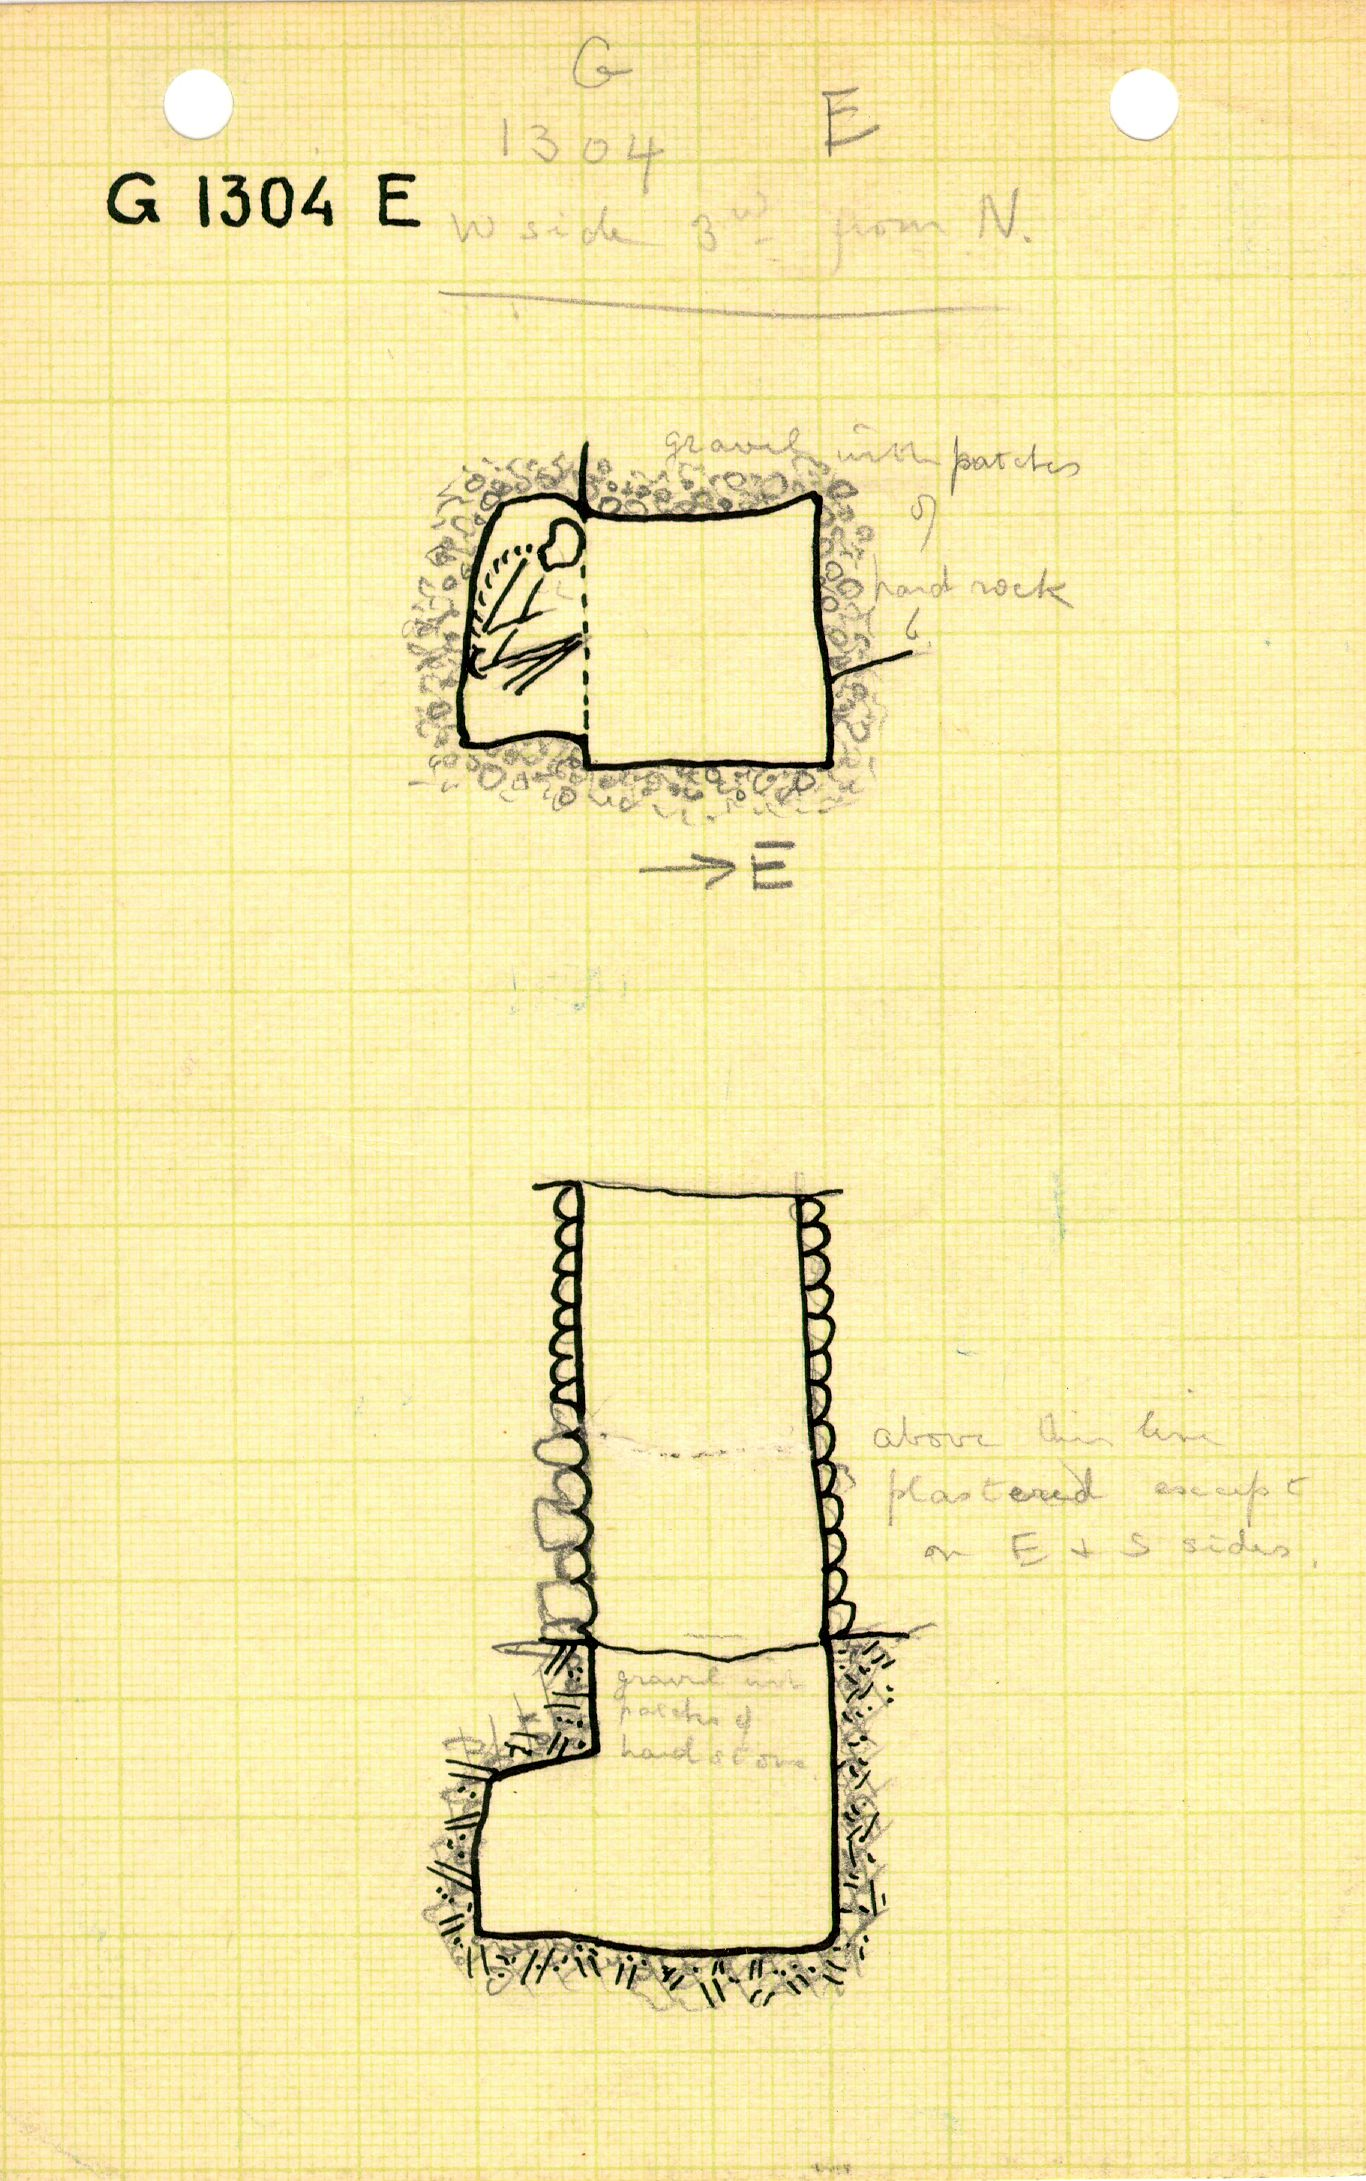 Maps and plans: G 1304, Shaft E